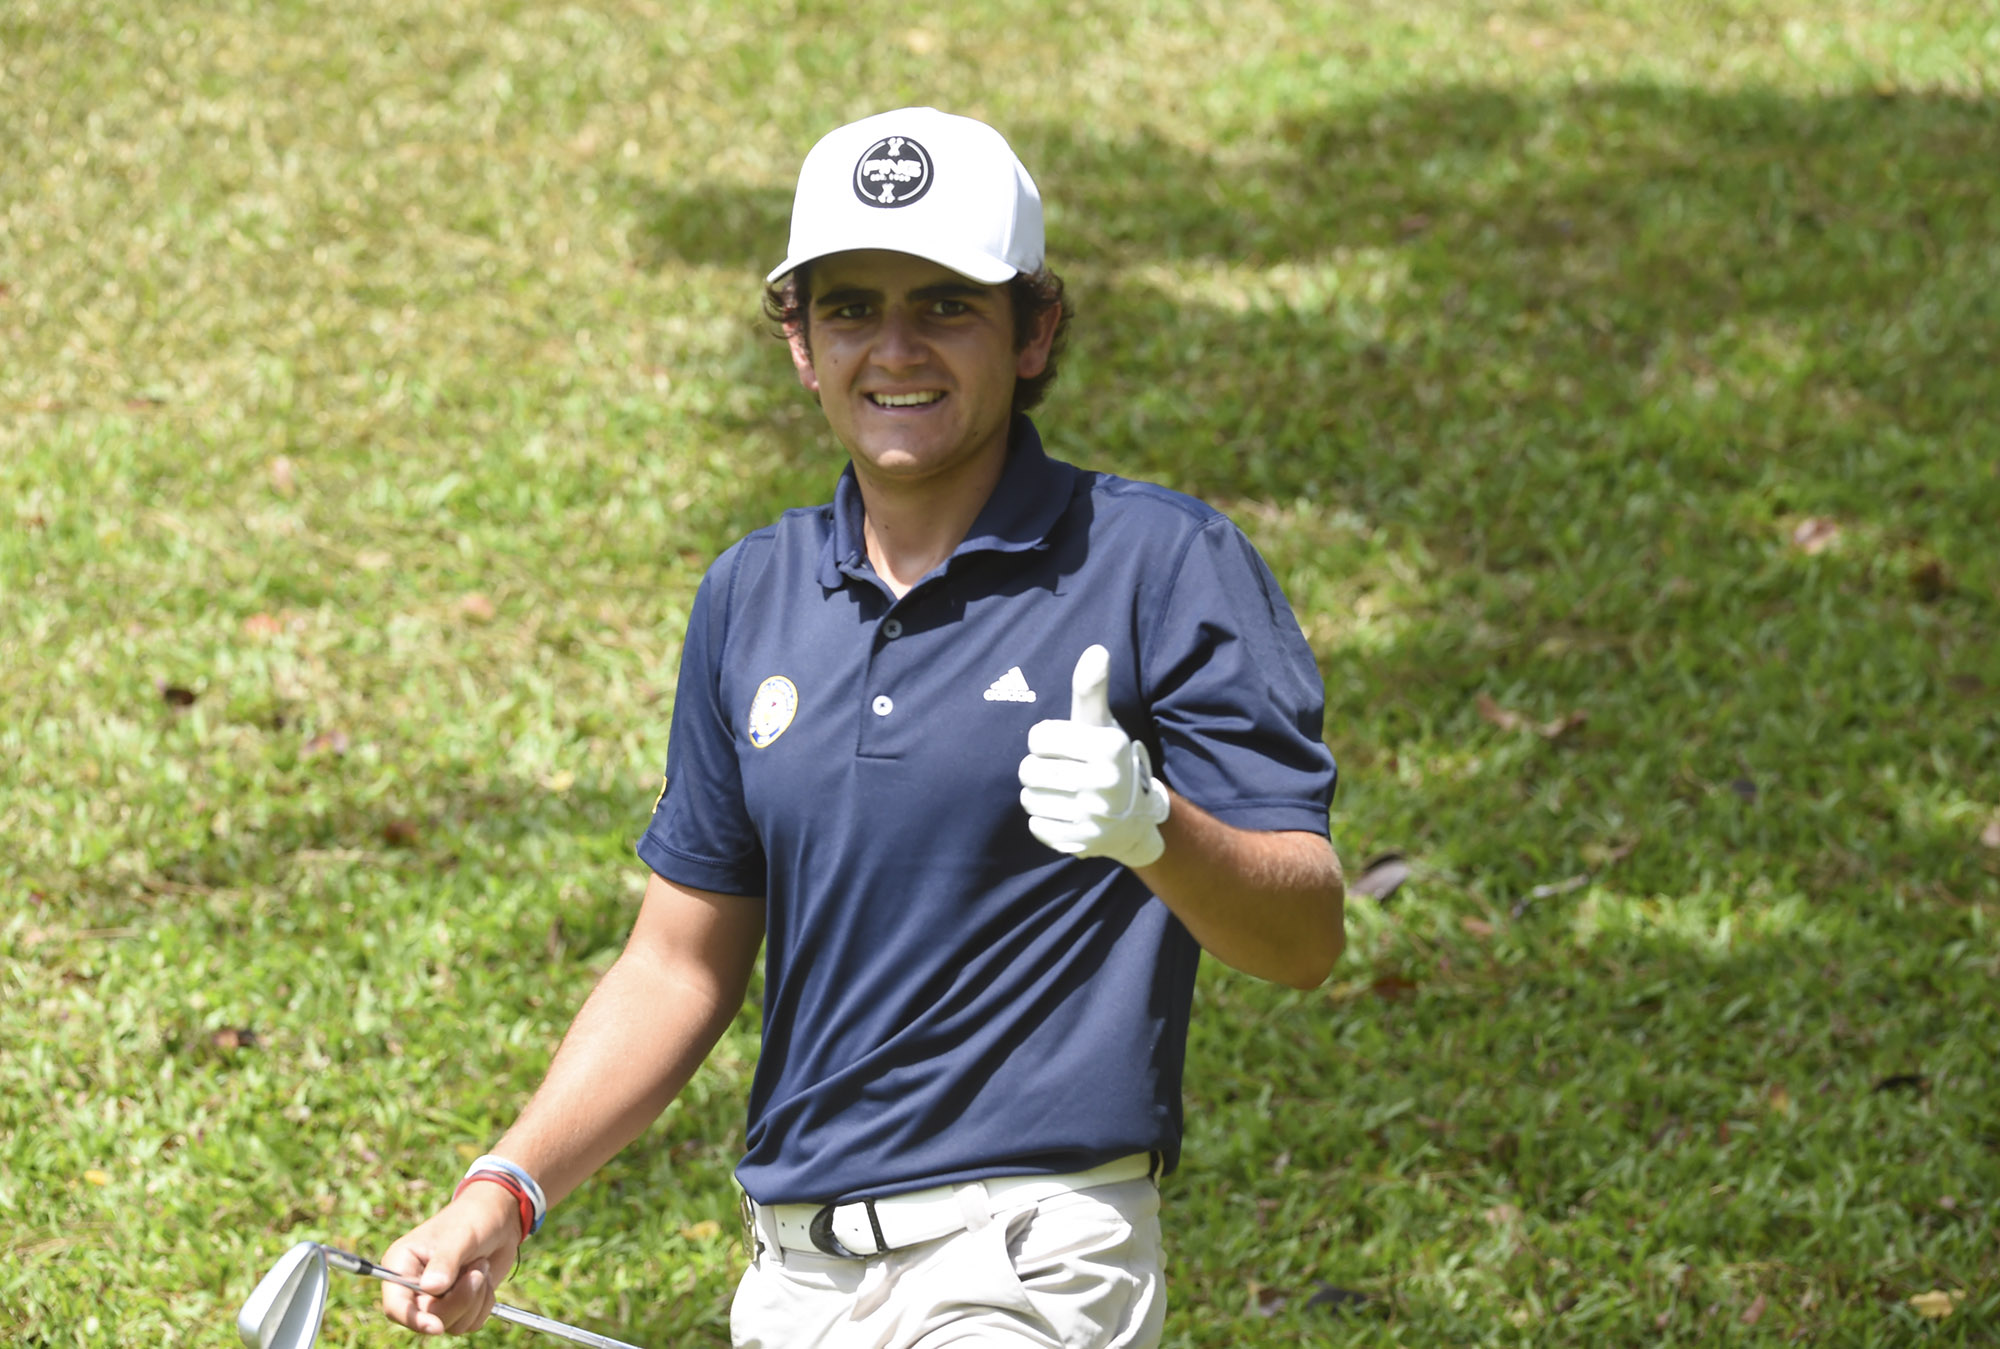 Panama City, Panama:Tomas Gana of Chile pictured at the 2017 Latin America Amateur Championship at the Club de Golf de Panama during Round two on January 13th . (Photo by Enrique Berardi/LAAC)